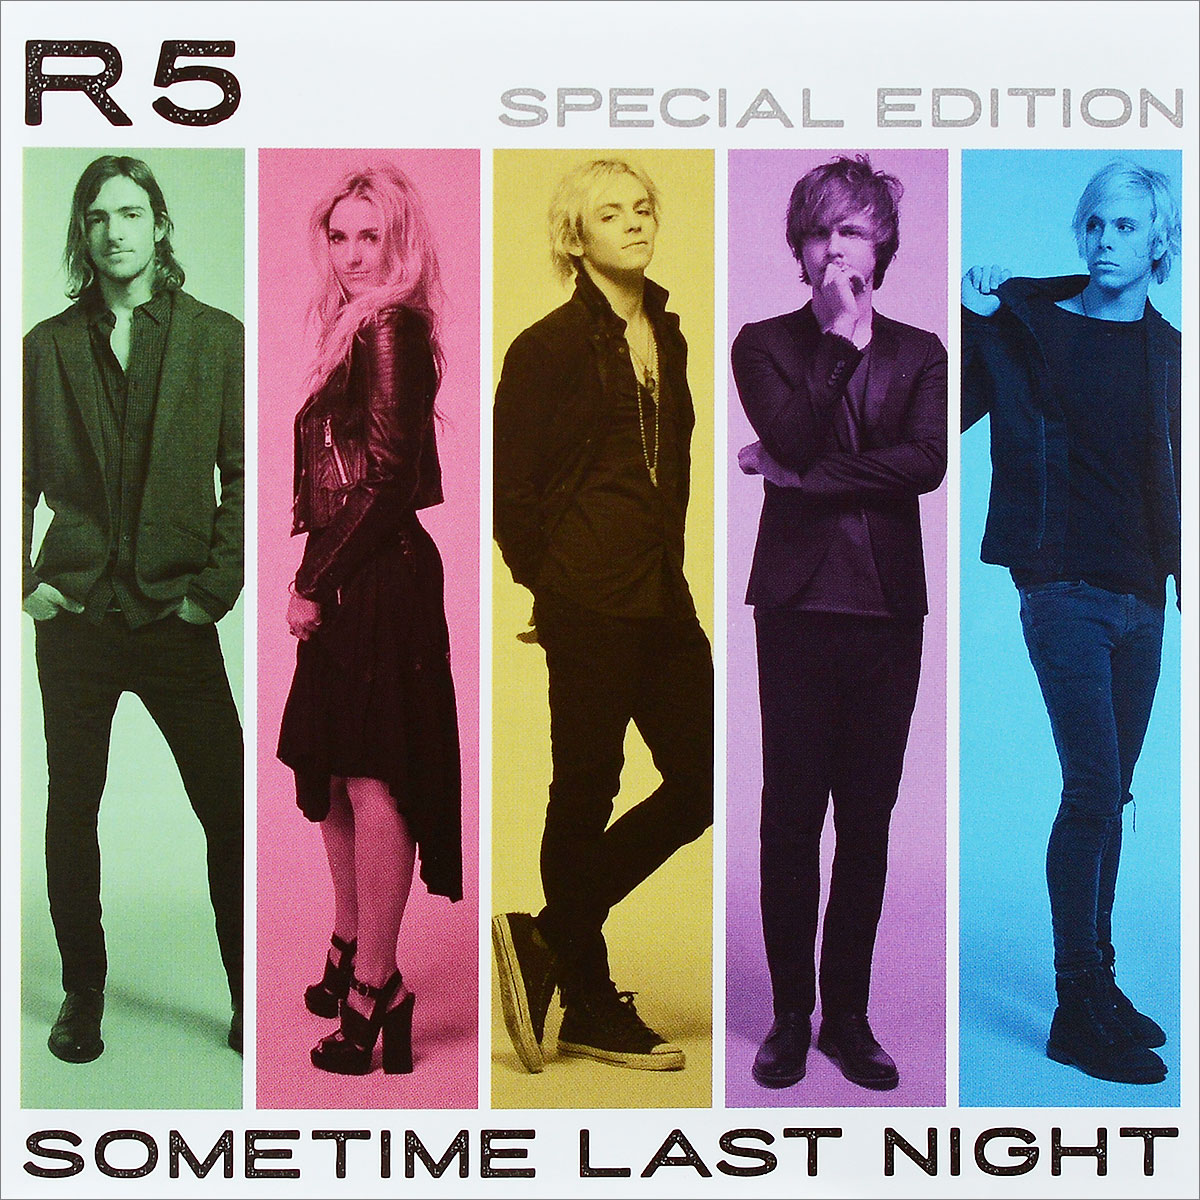 R5 R5. Sometime Last Night. Special Edition